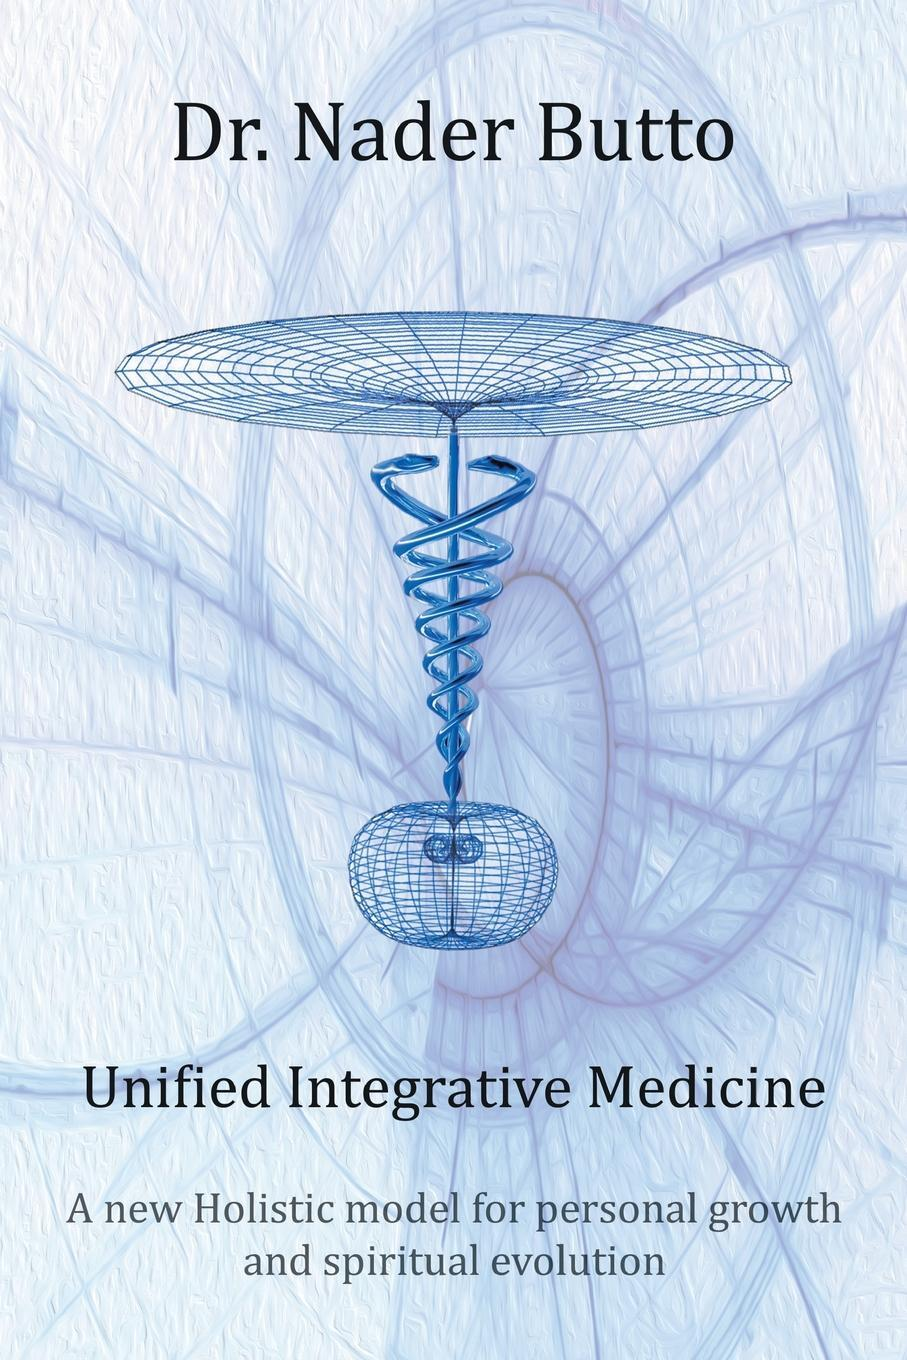 Unified Integrative Medicine. A new Holistic model for personal growth and spiritual evolution. Dr. Nader Butto